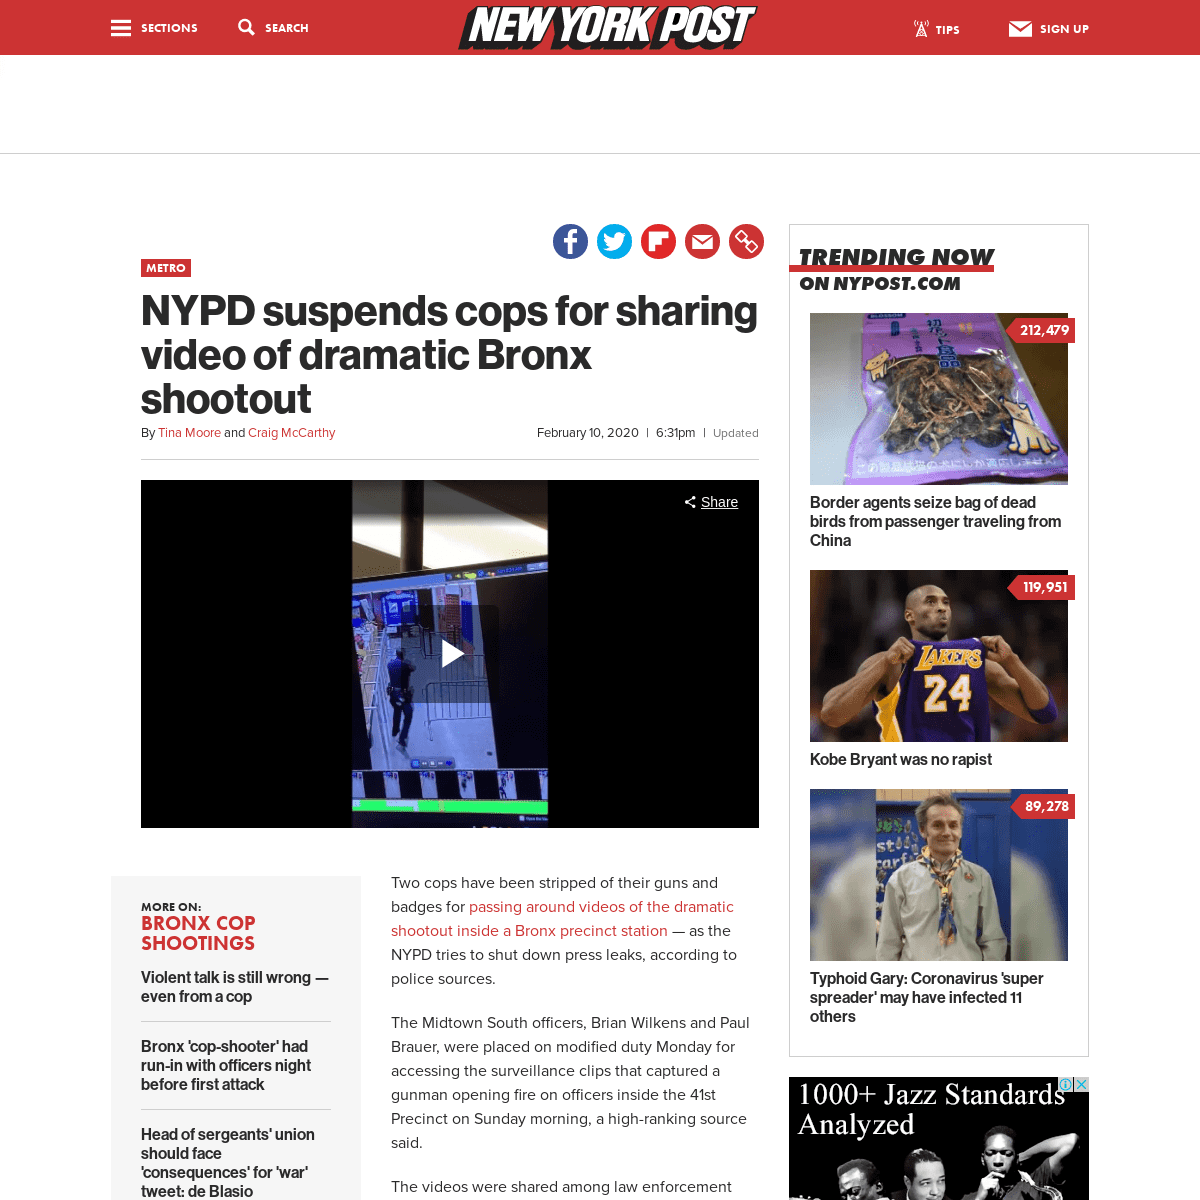 NYPD cops suspended for sharing video of dramatic Bronx shootout